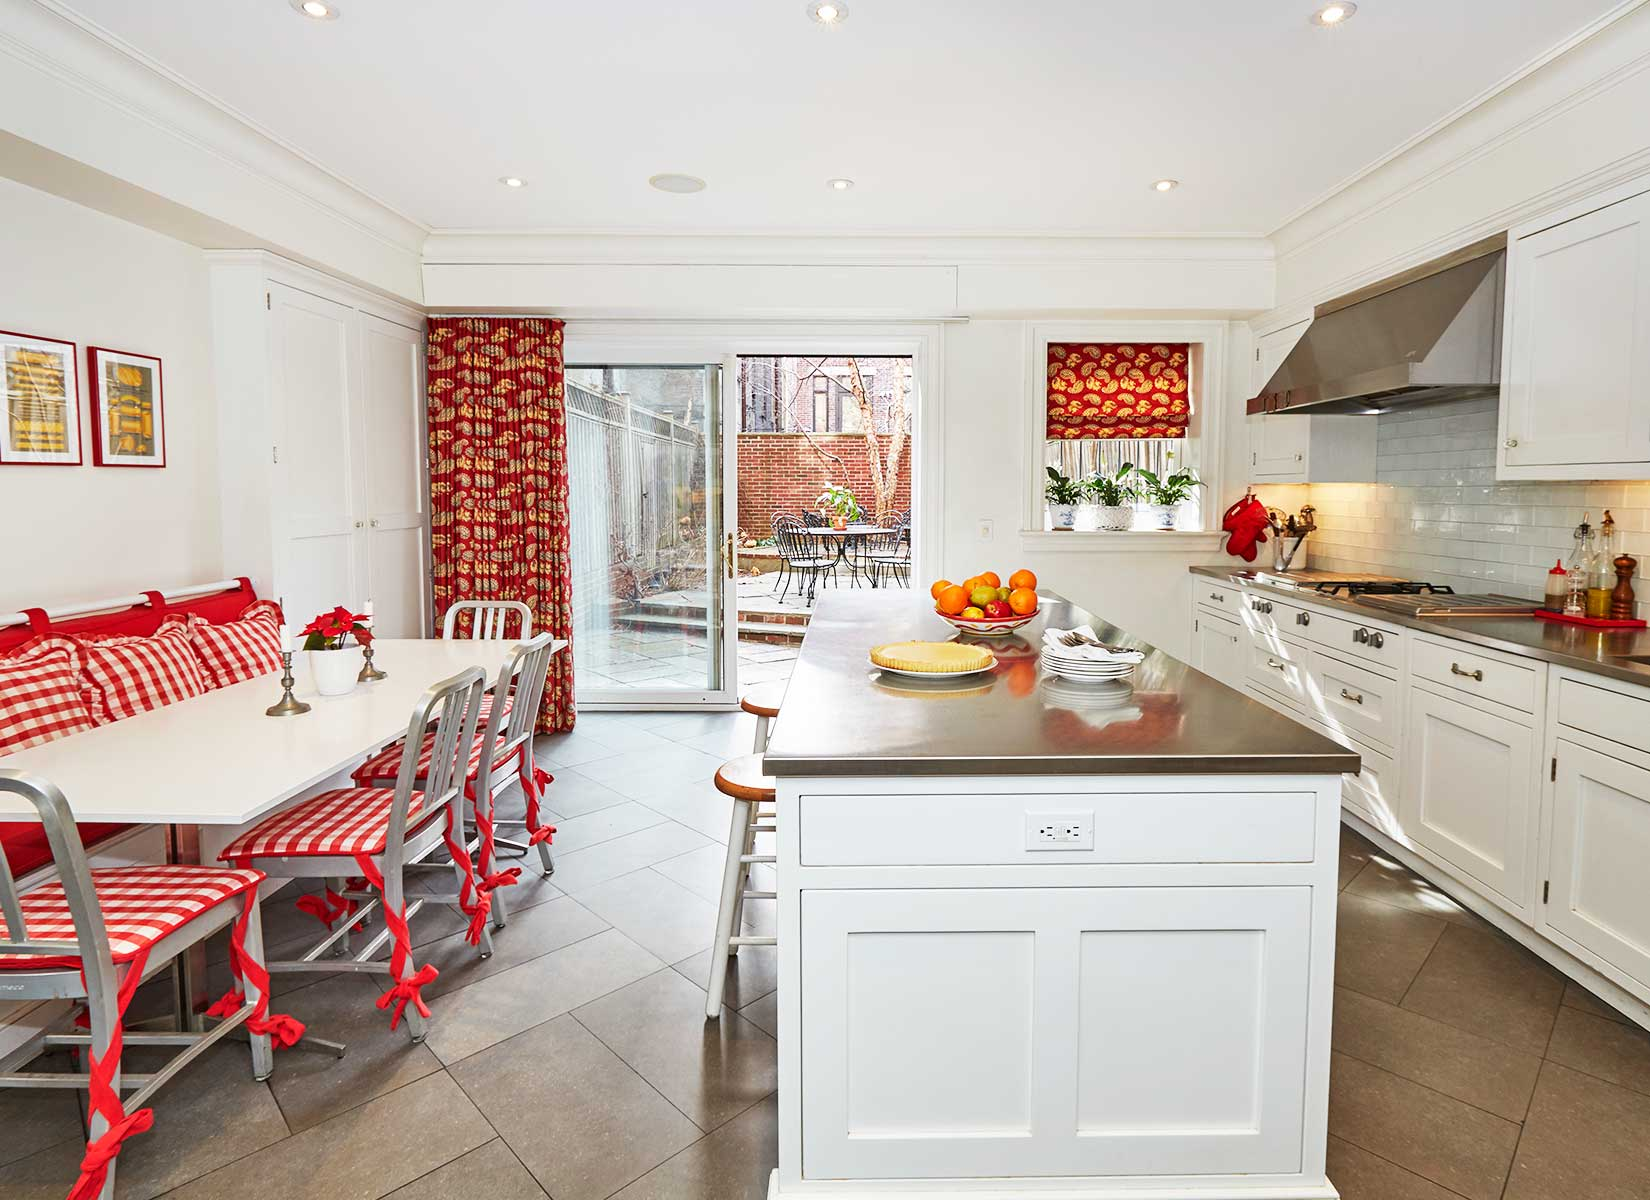 The eat-in kitchen is truly the heart of the home. The huge central island with stainless steel counter top offers impressive prep space with a lovely view of the beautiful south-facing garden and deck, ideal for alfresco dining and entertaining.